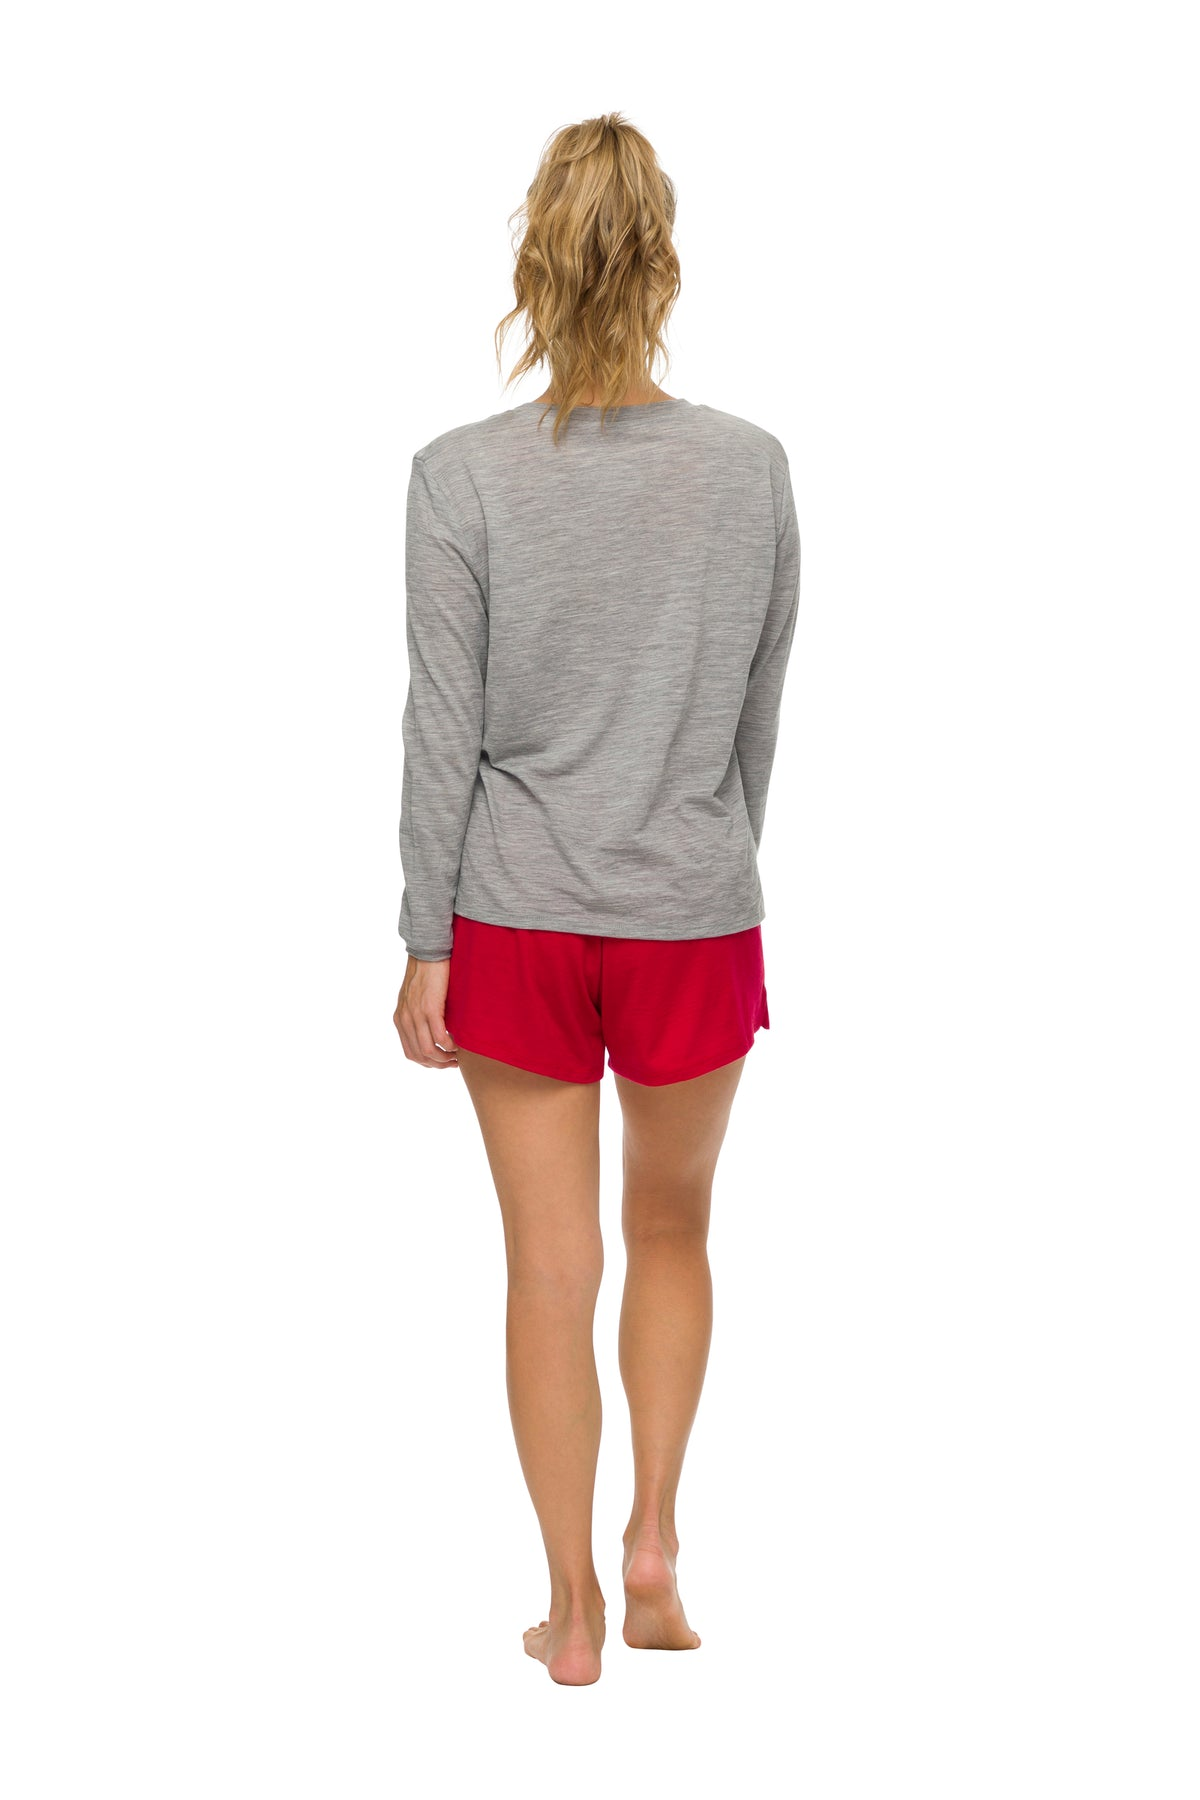 Women's Long Sleeve Pyjama Top | 100% Merino Wool Grey Marle